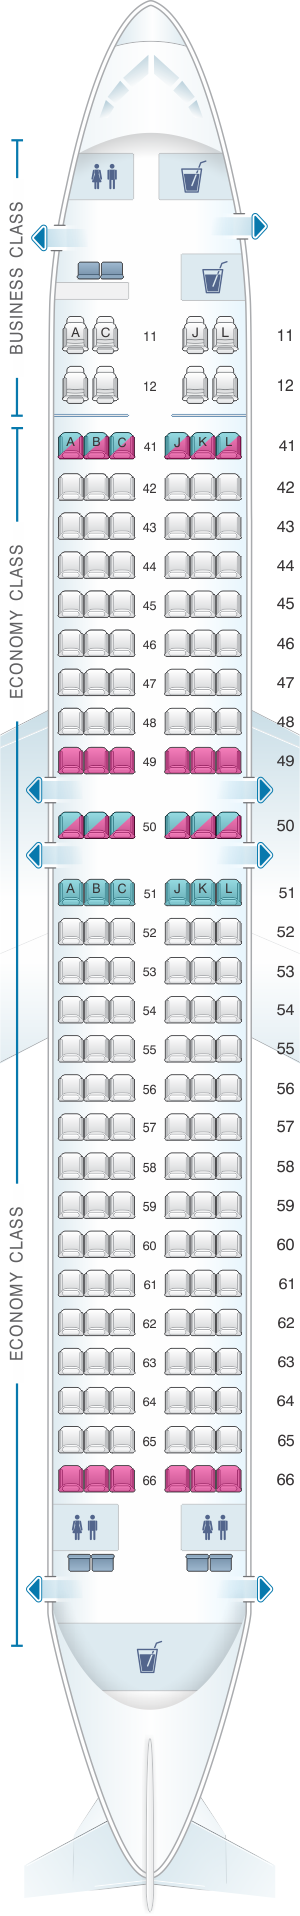 Seat map for Xiamen Airlines Boeing B737 800 164pax